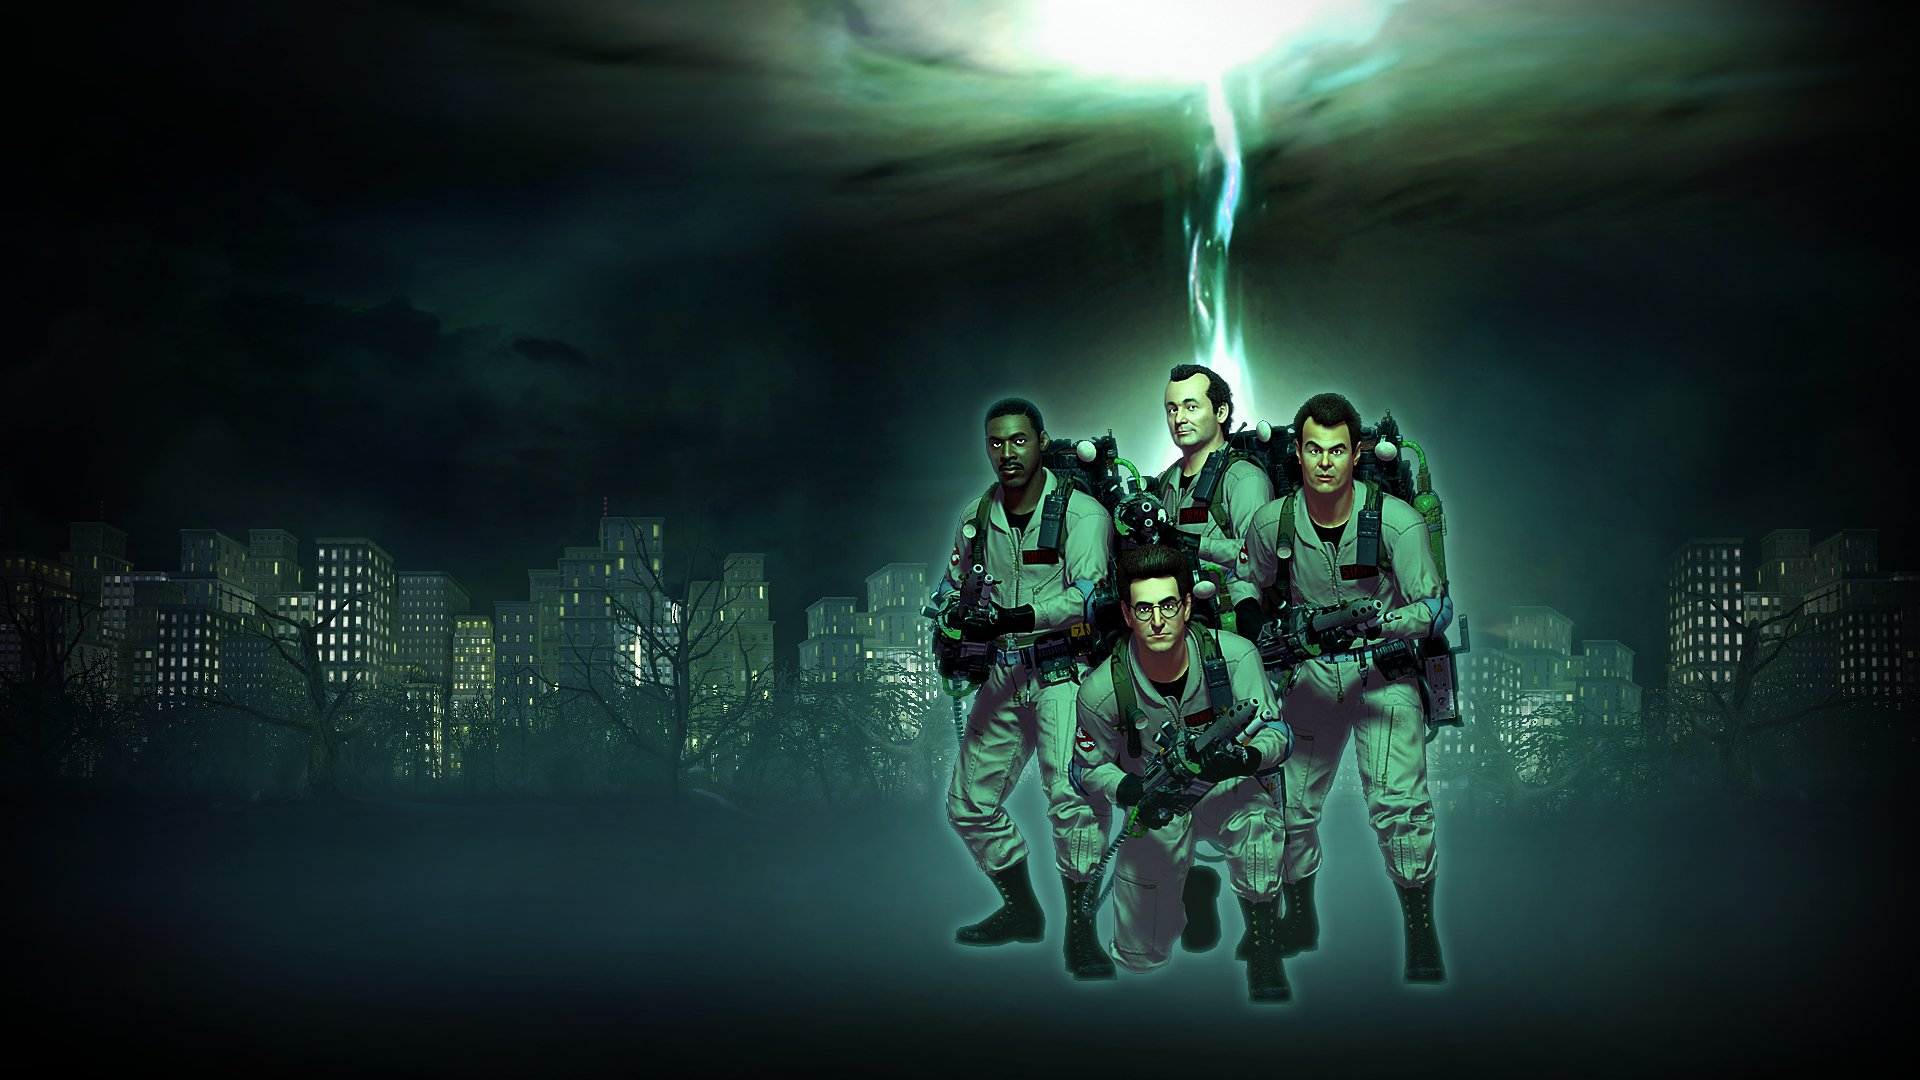 44 ghostbusters hd wallpapers | background images - wallpaper abyss